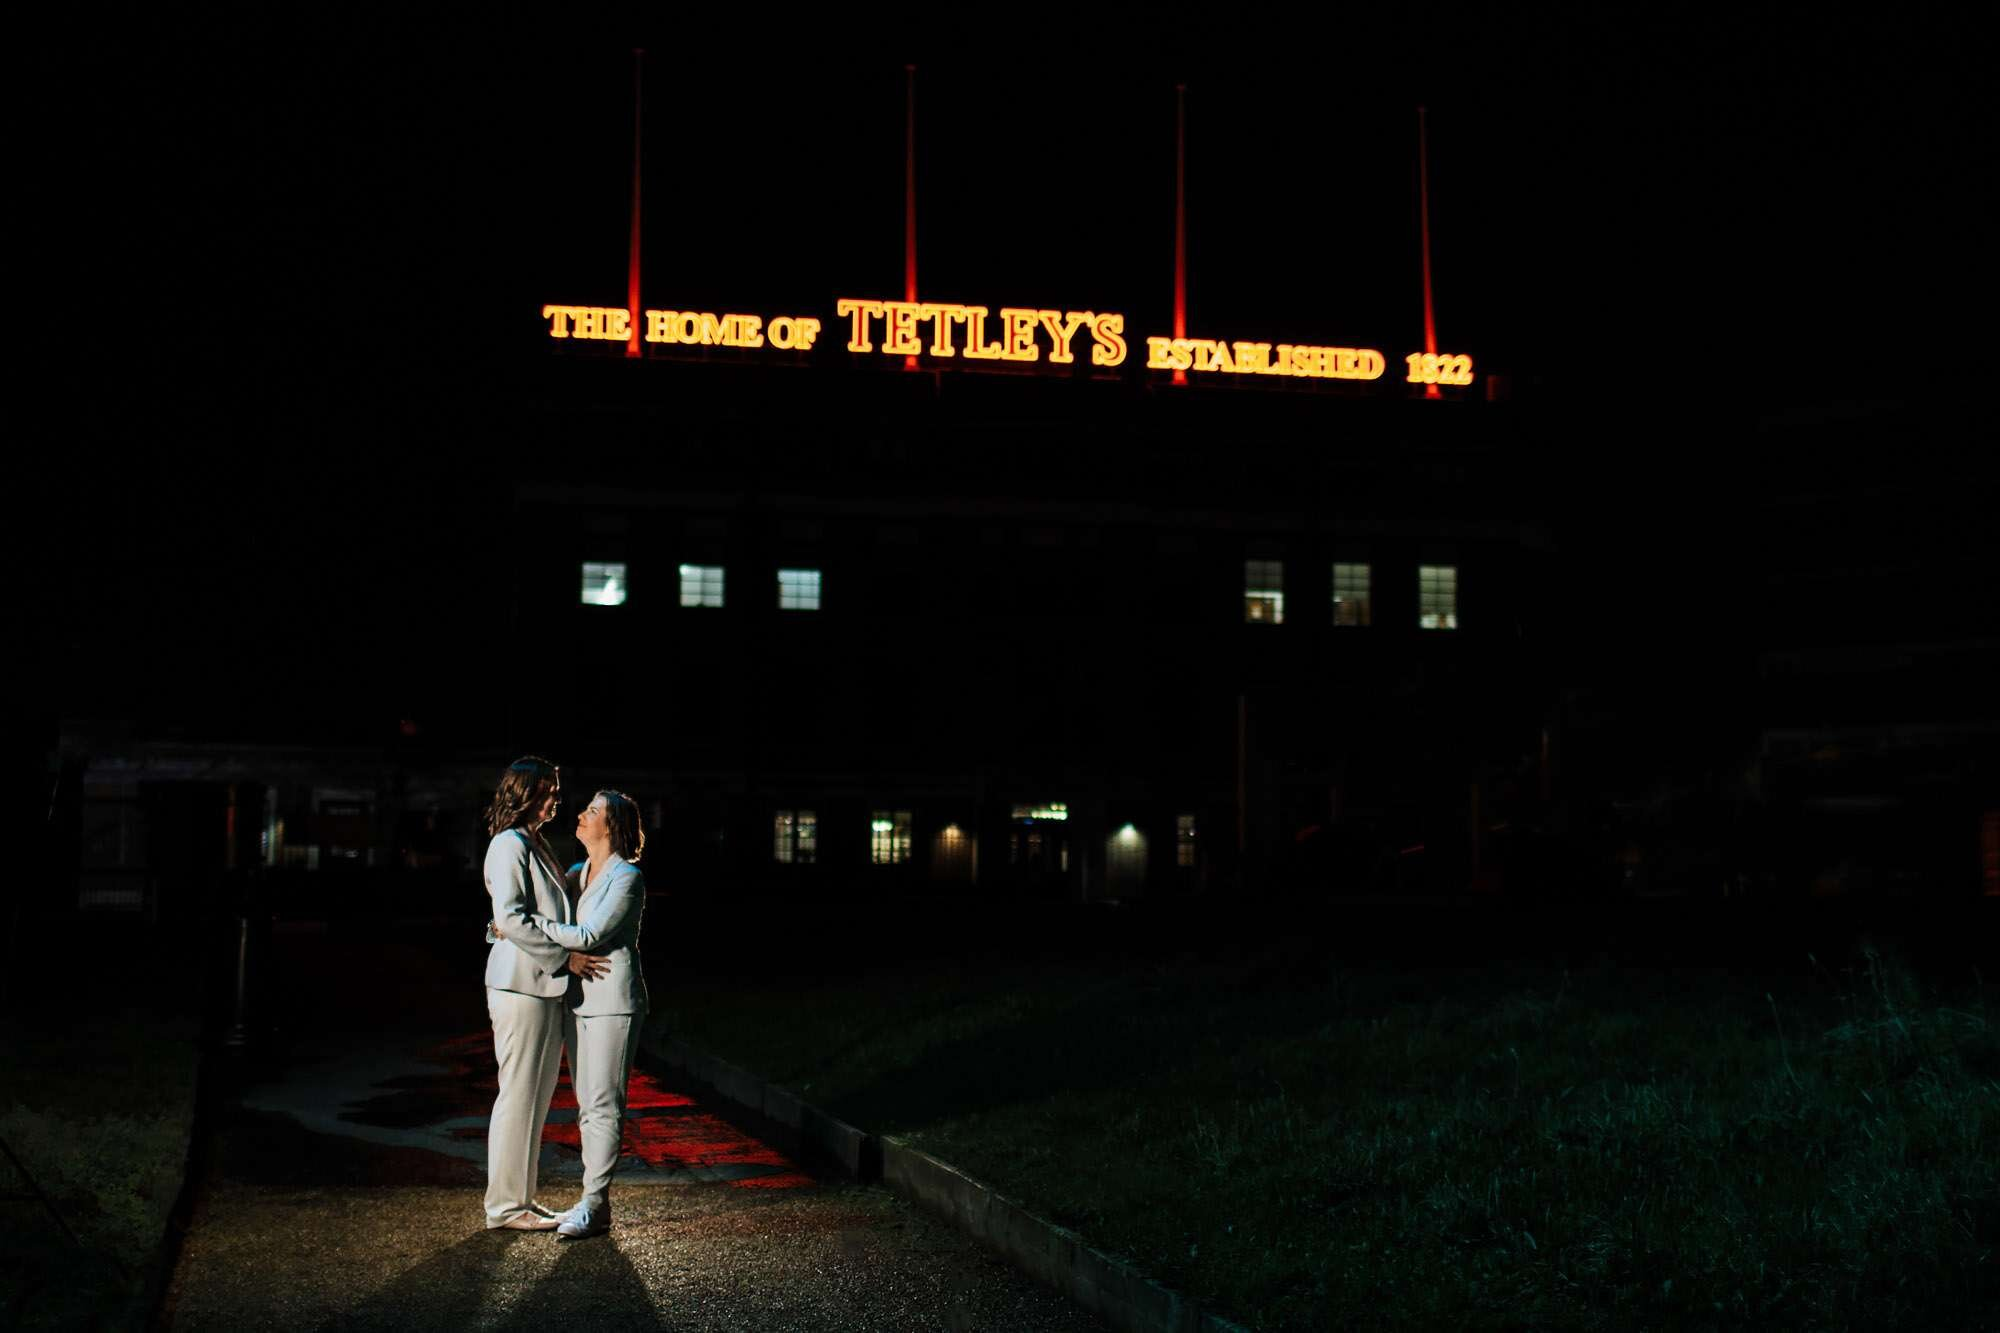 Gay wedding at The Tetley Leeds by night